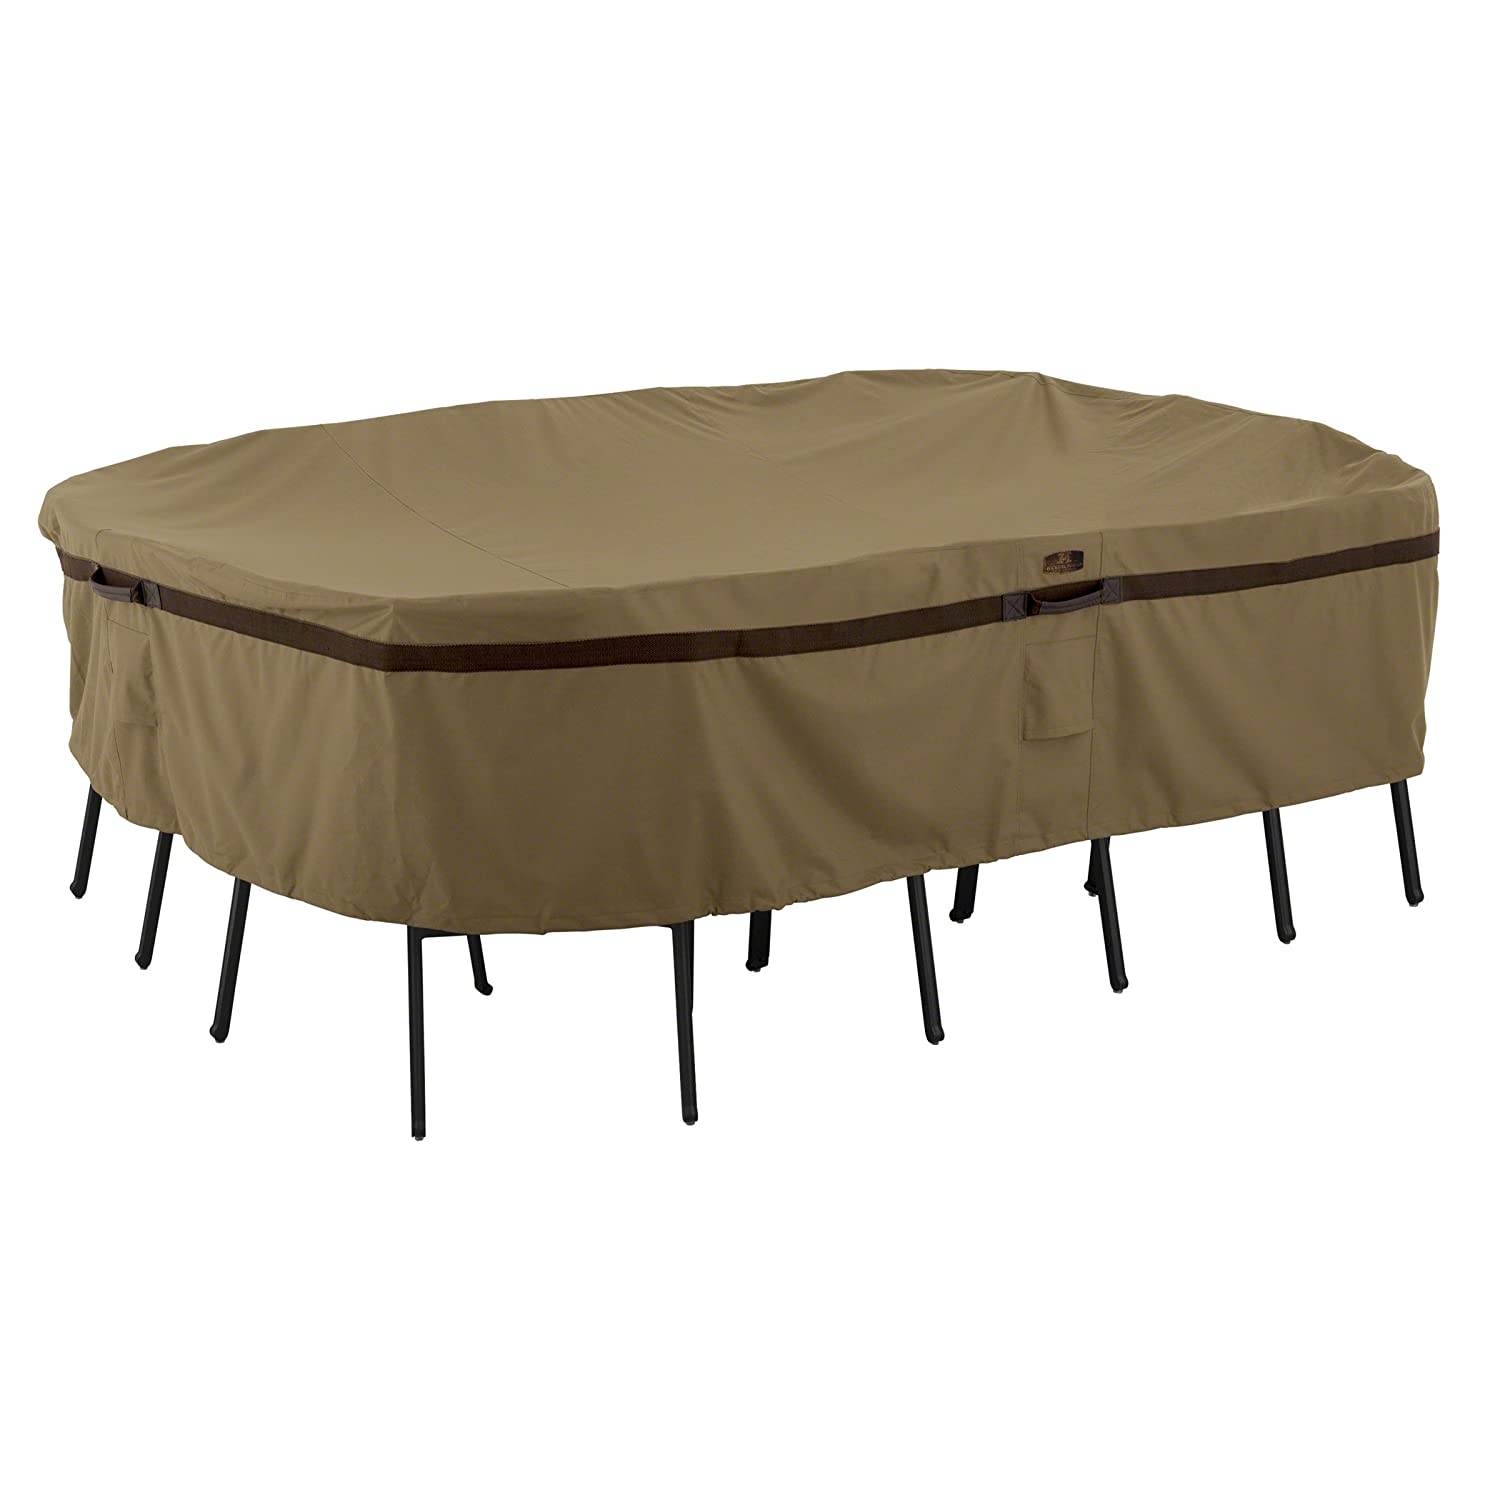 Amazon.com: Waterproof - Furniture Sets / Patio Furniture Covers ...